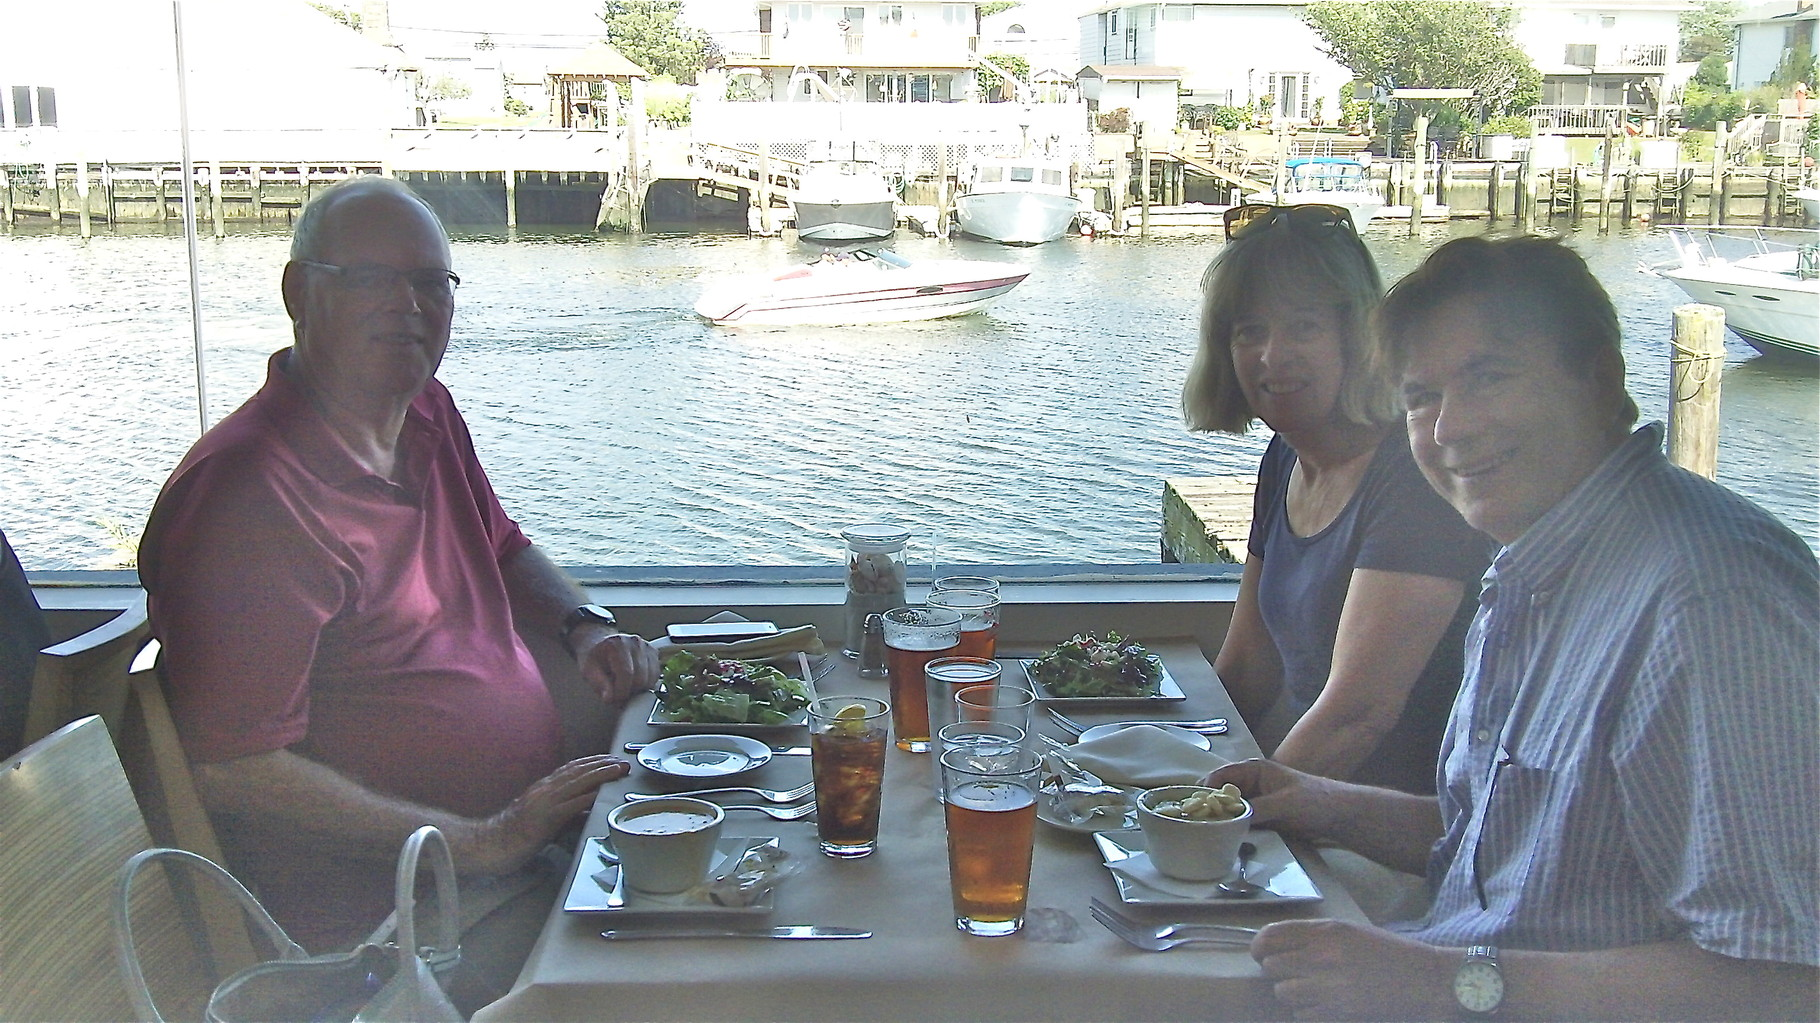 Dinner at Rachel's, Freeport, LI